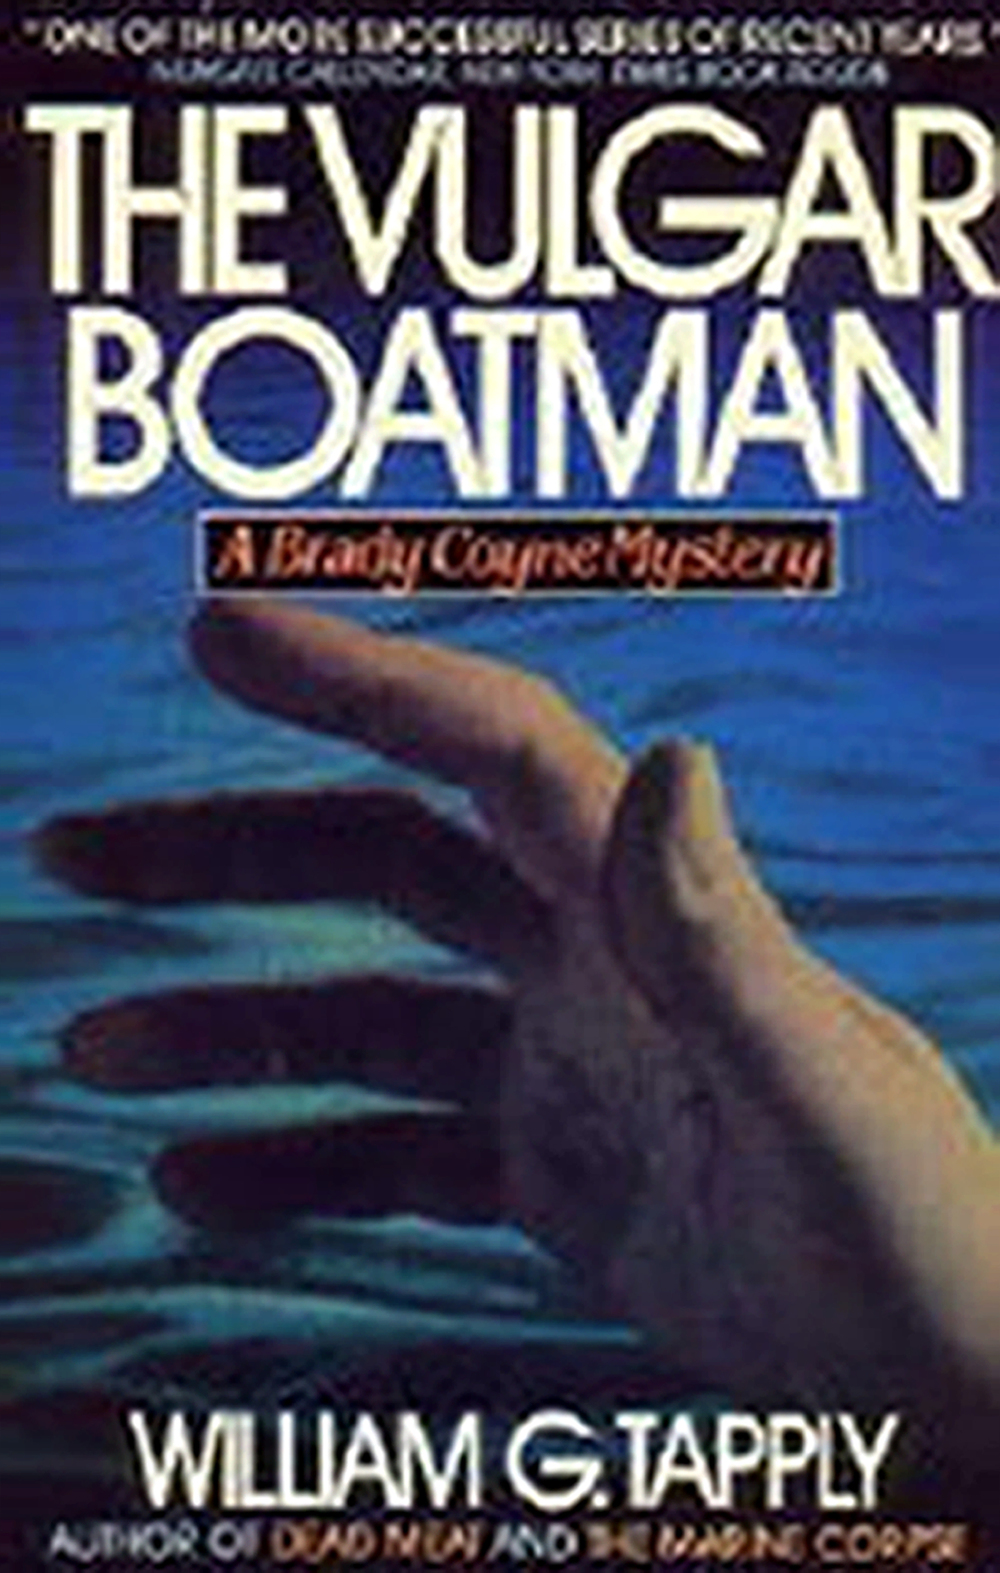 Tapply, mystery, novel, Vulgar Boatman, suspense, thriller